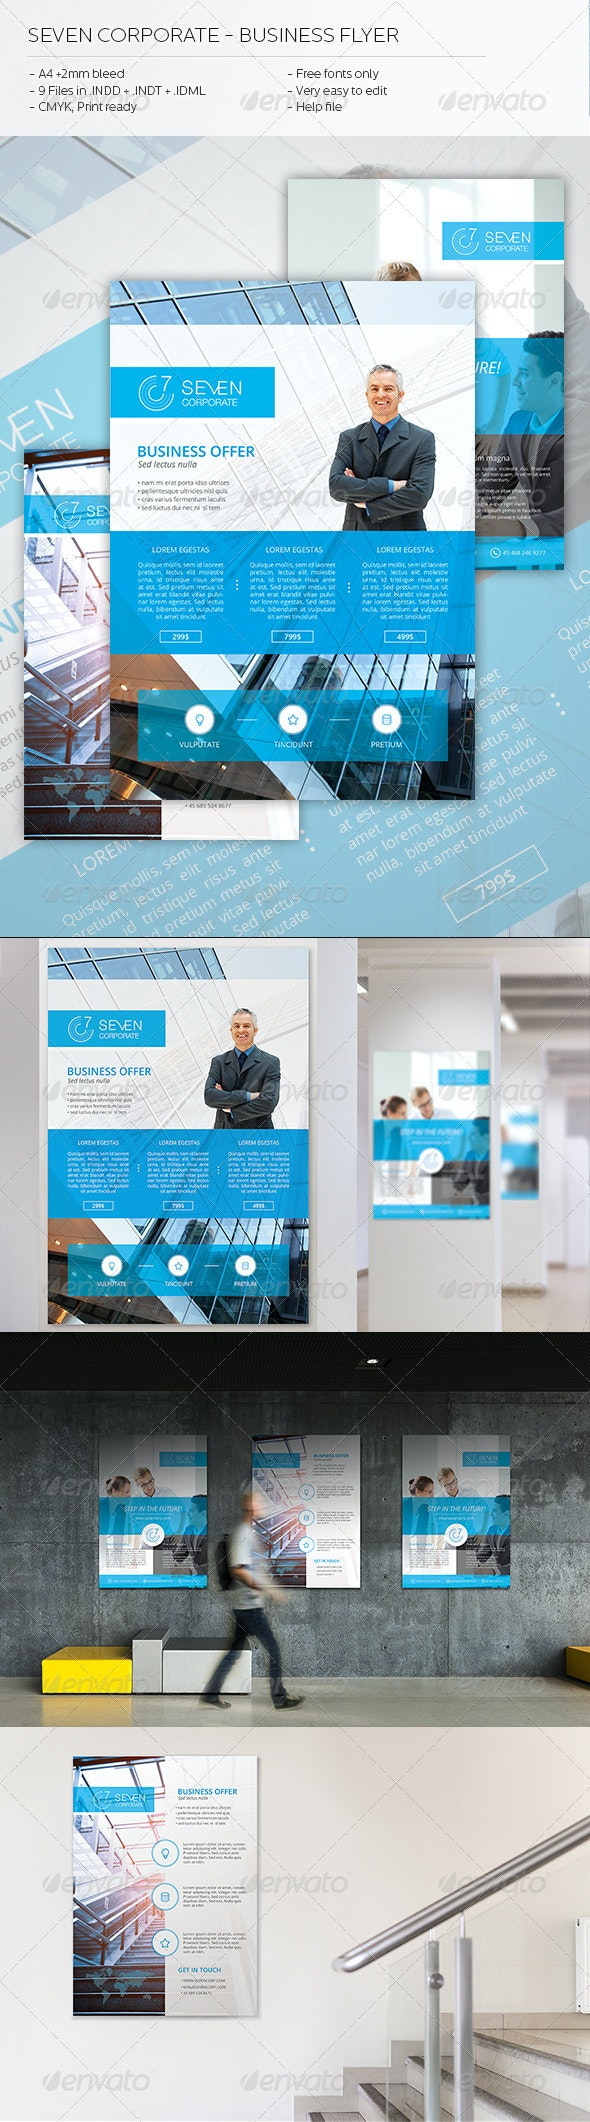 Seven Corporate - Business Flyer - Corporate Flyers